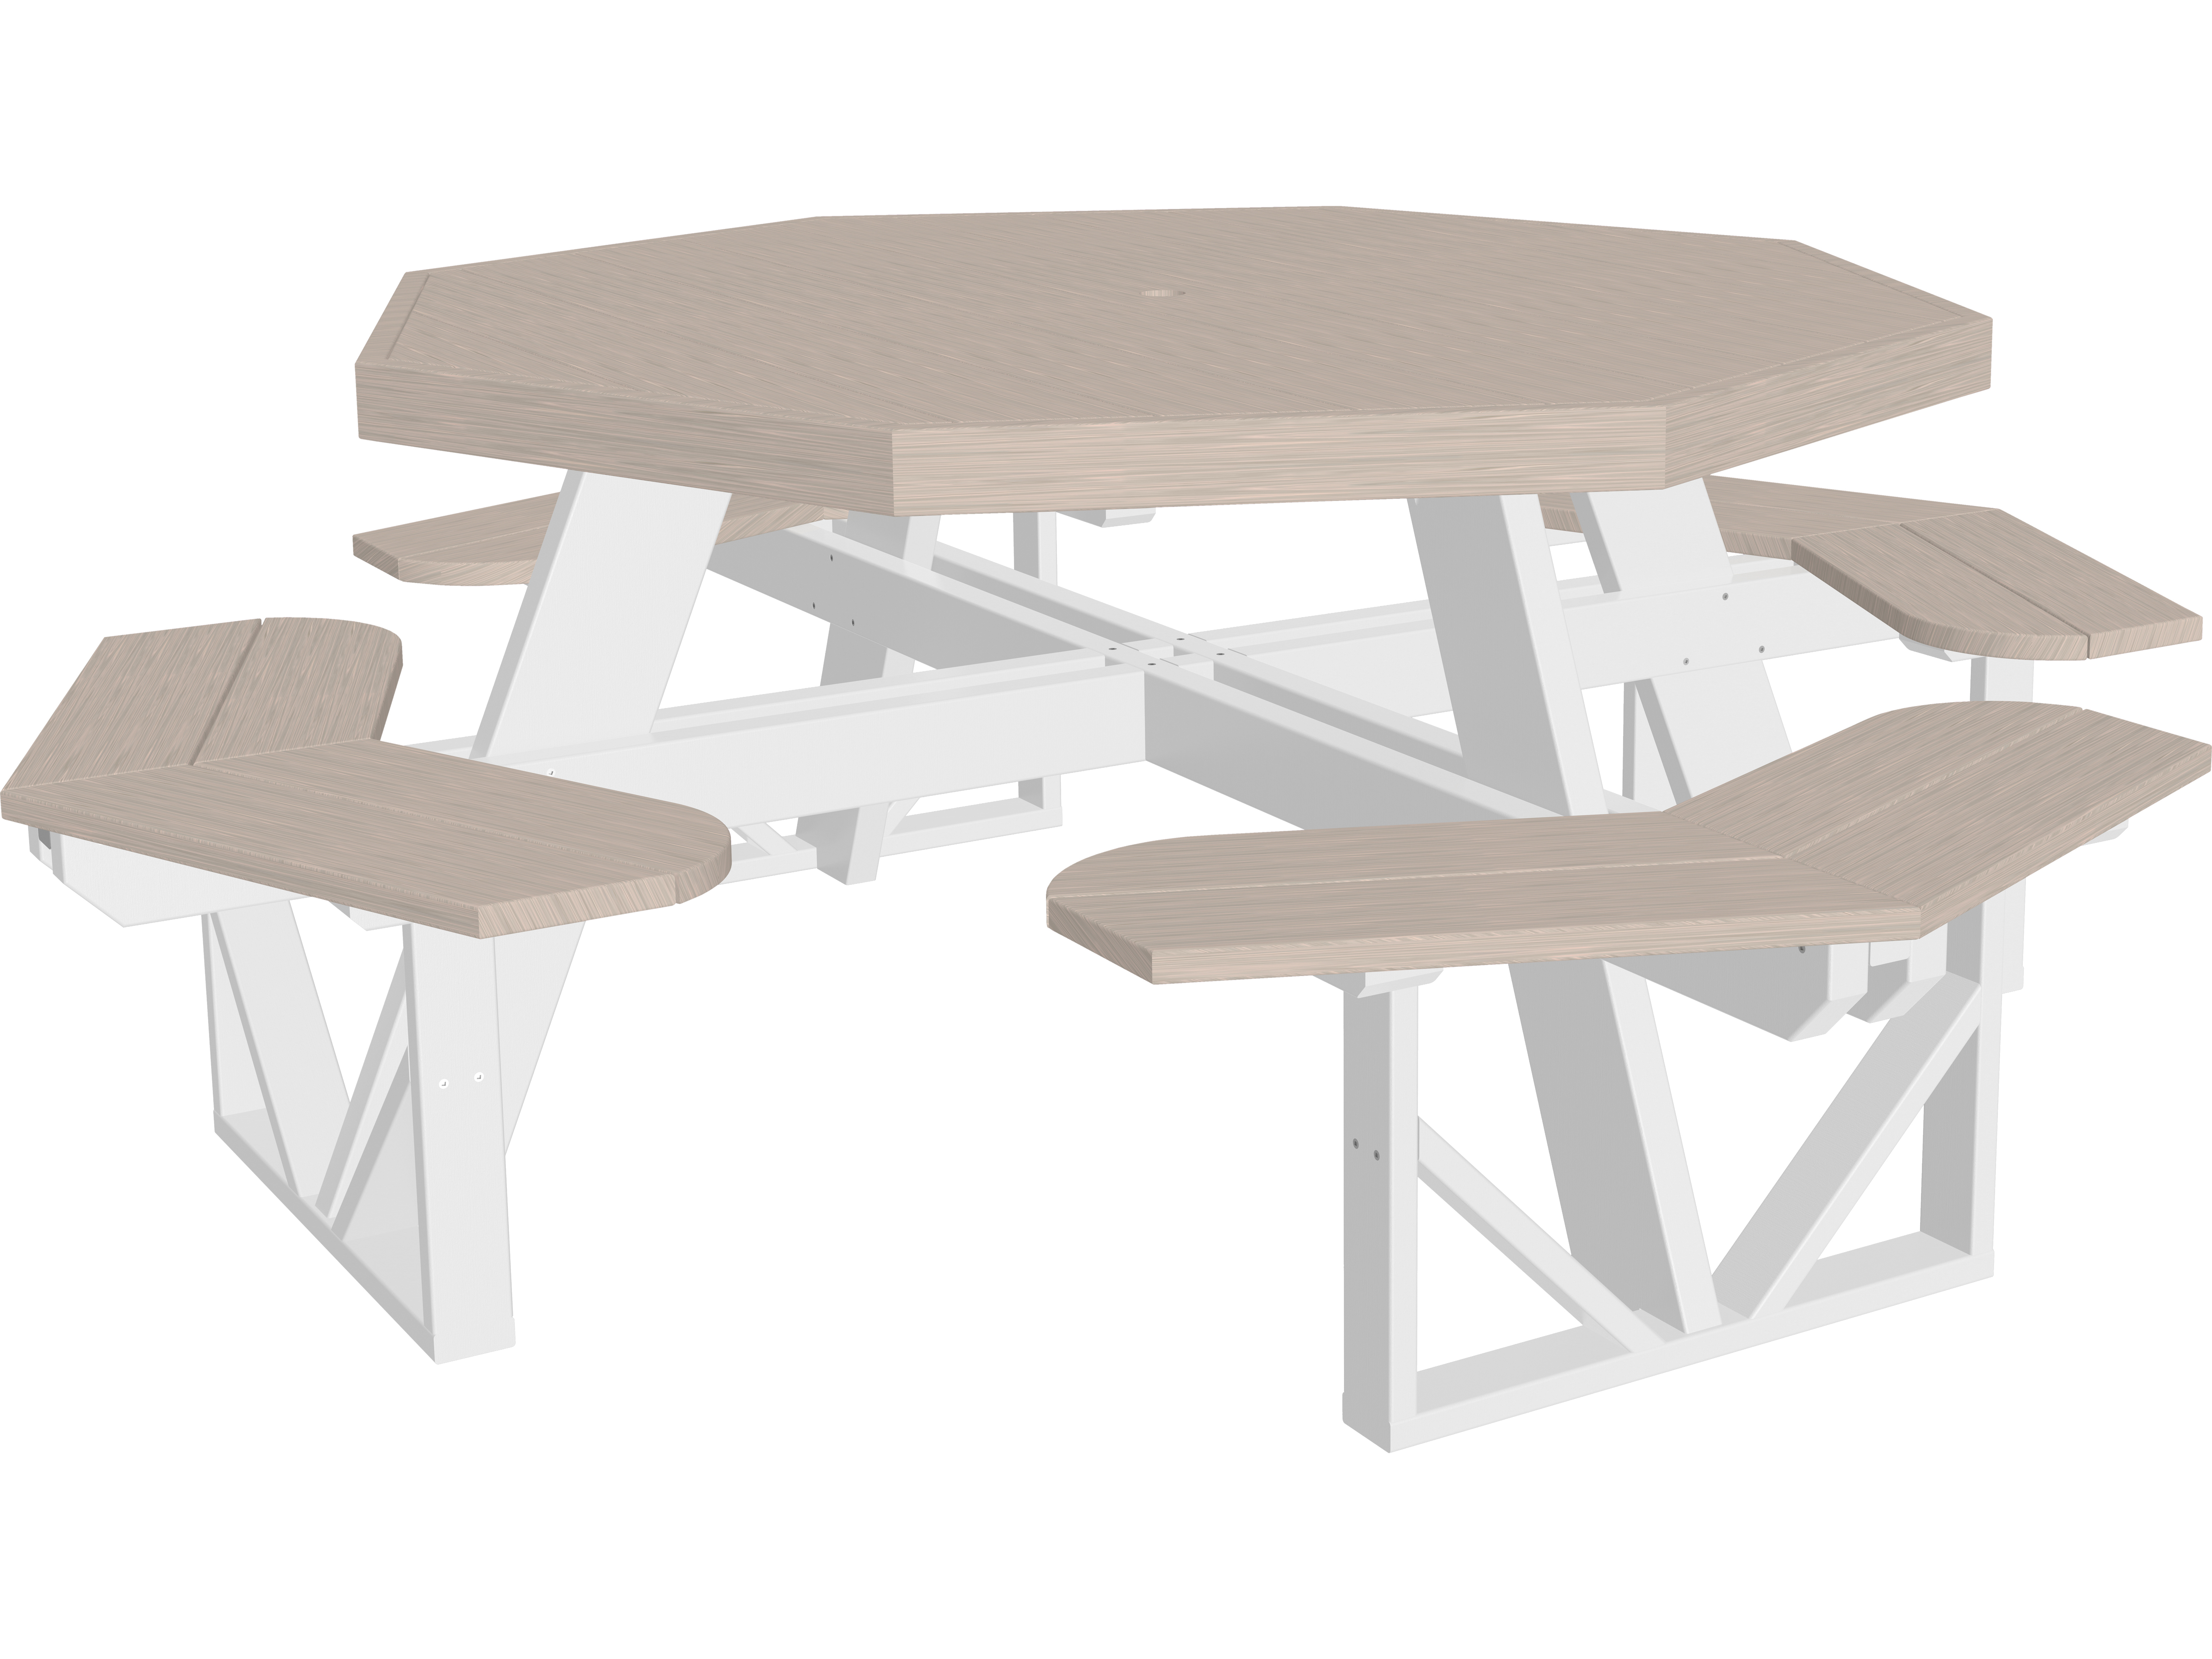 Luxcraft recycled plastic 86 5 octagon picnic table with - Picnic table with umbrella hole ...